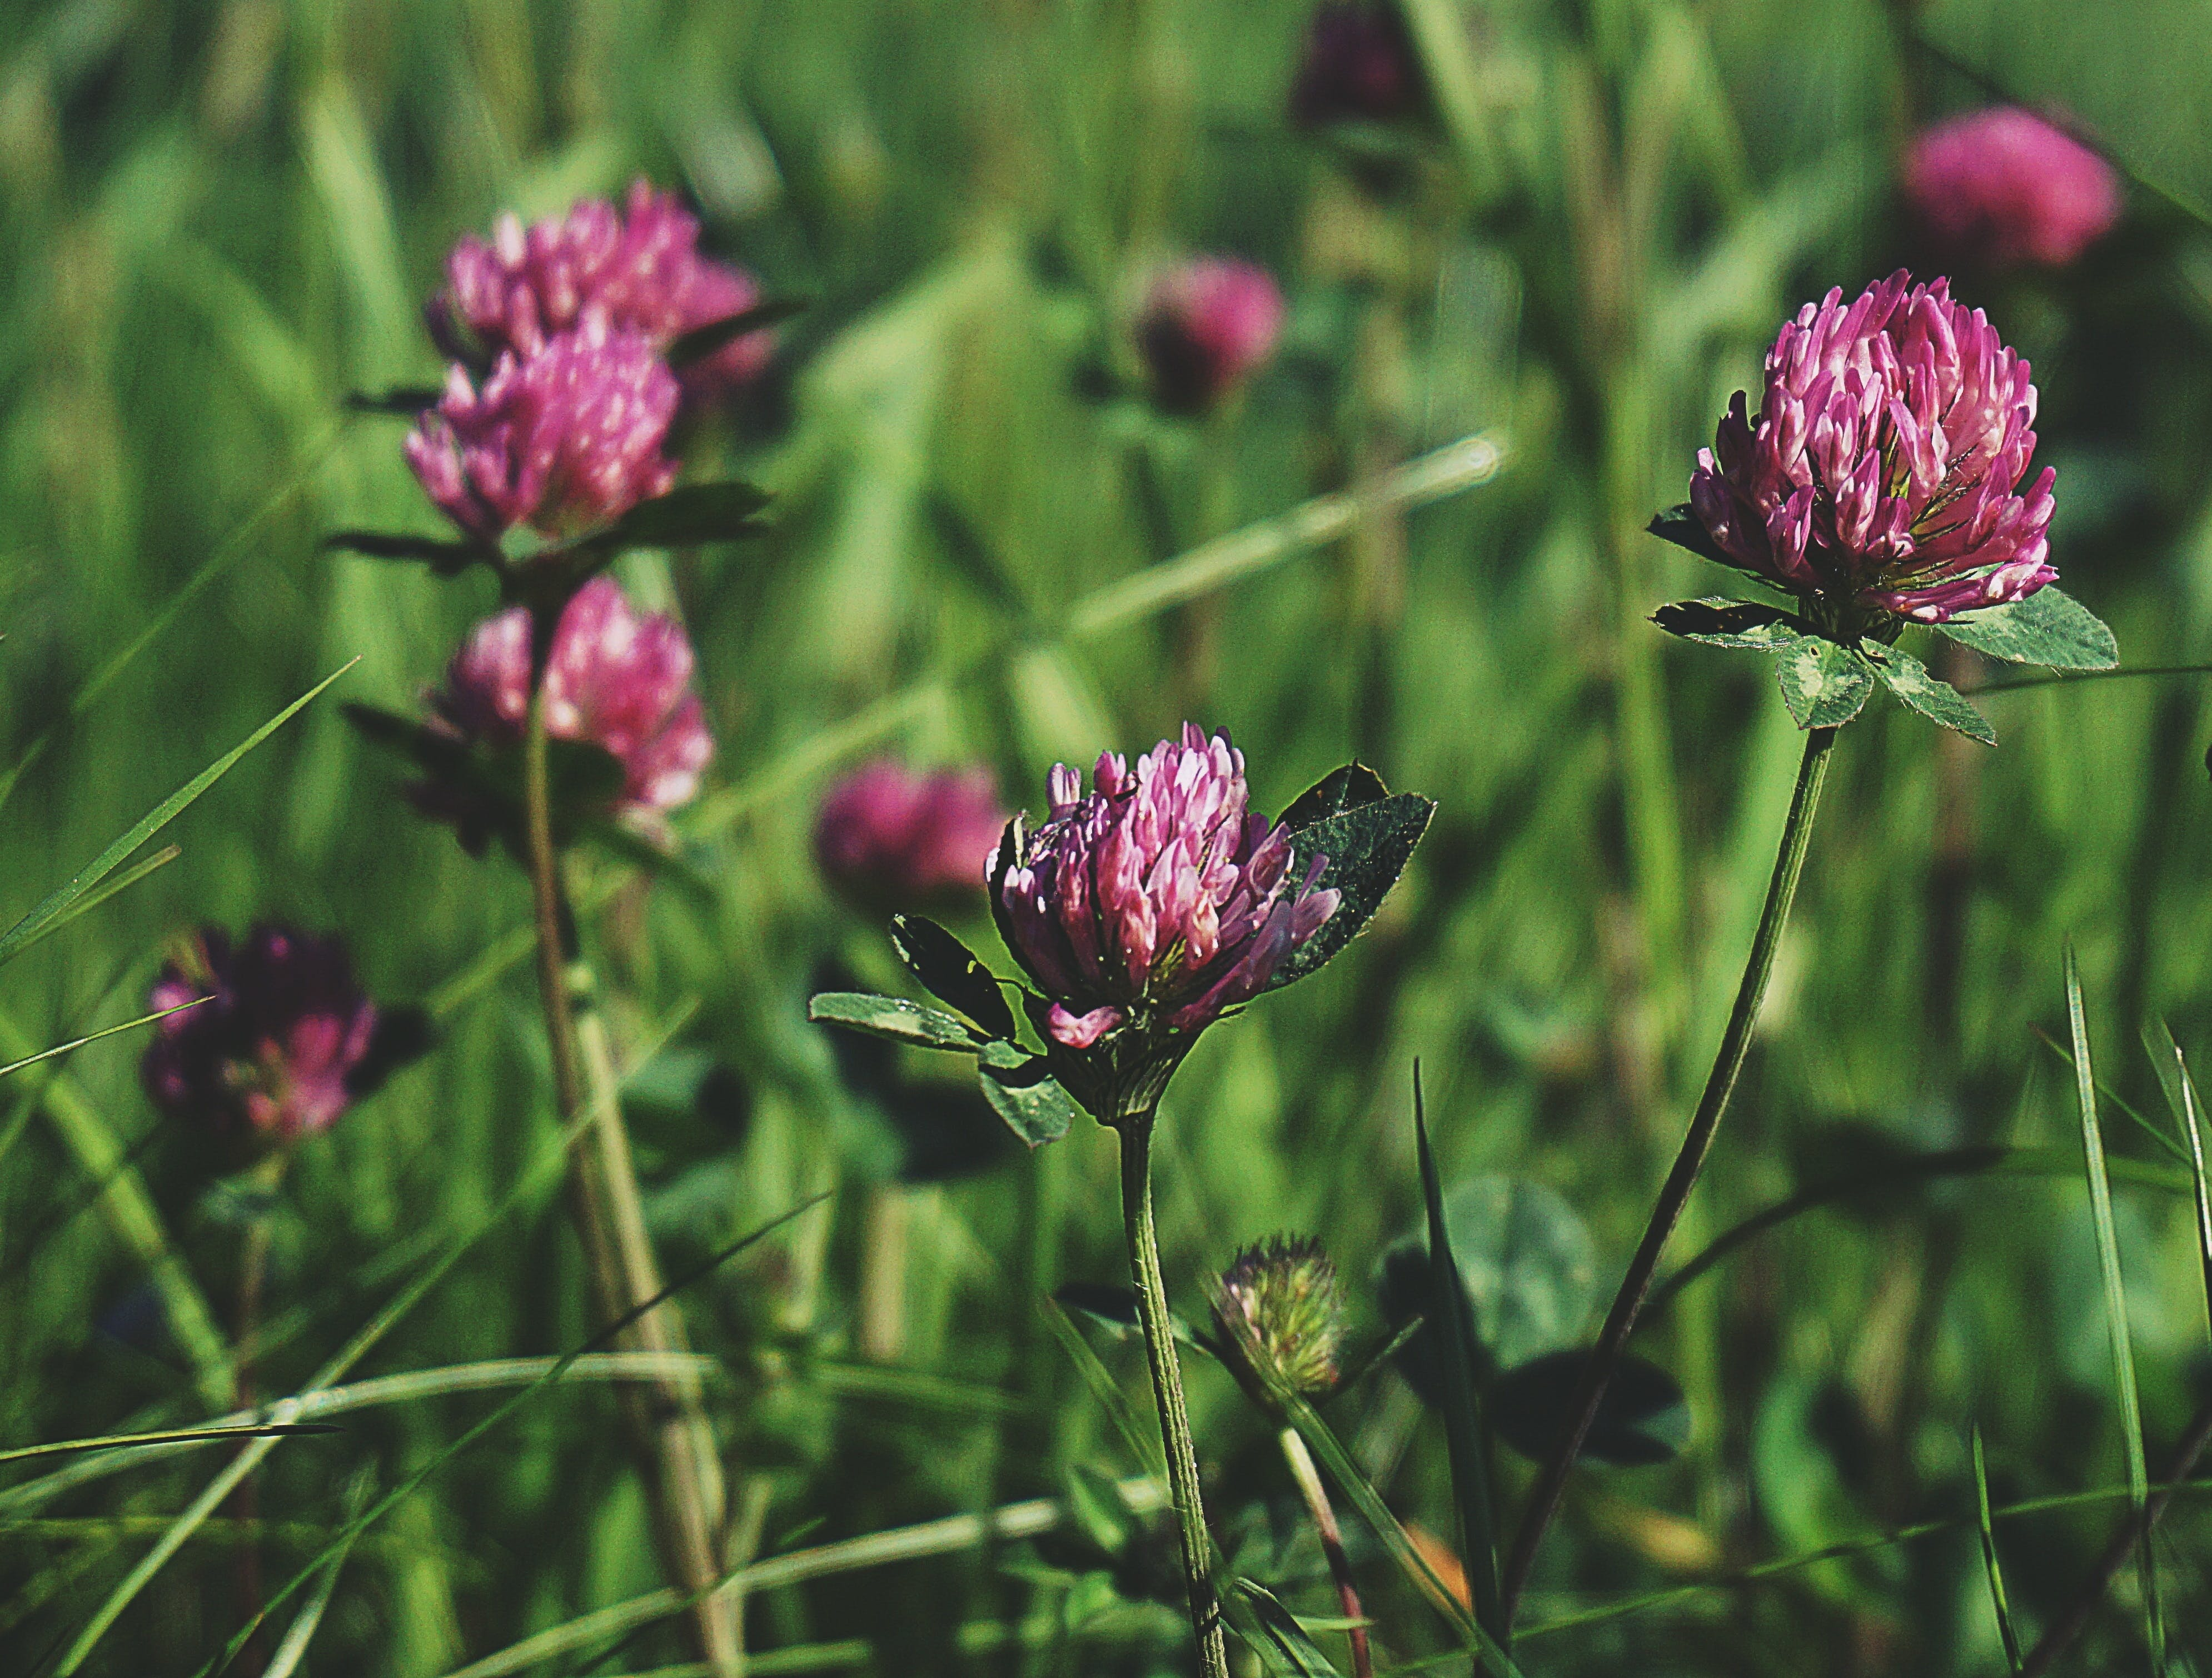 Free stock photo of nature, flowers, meadow, plants